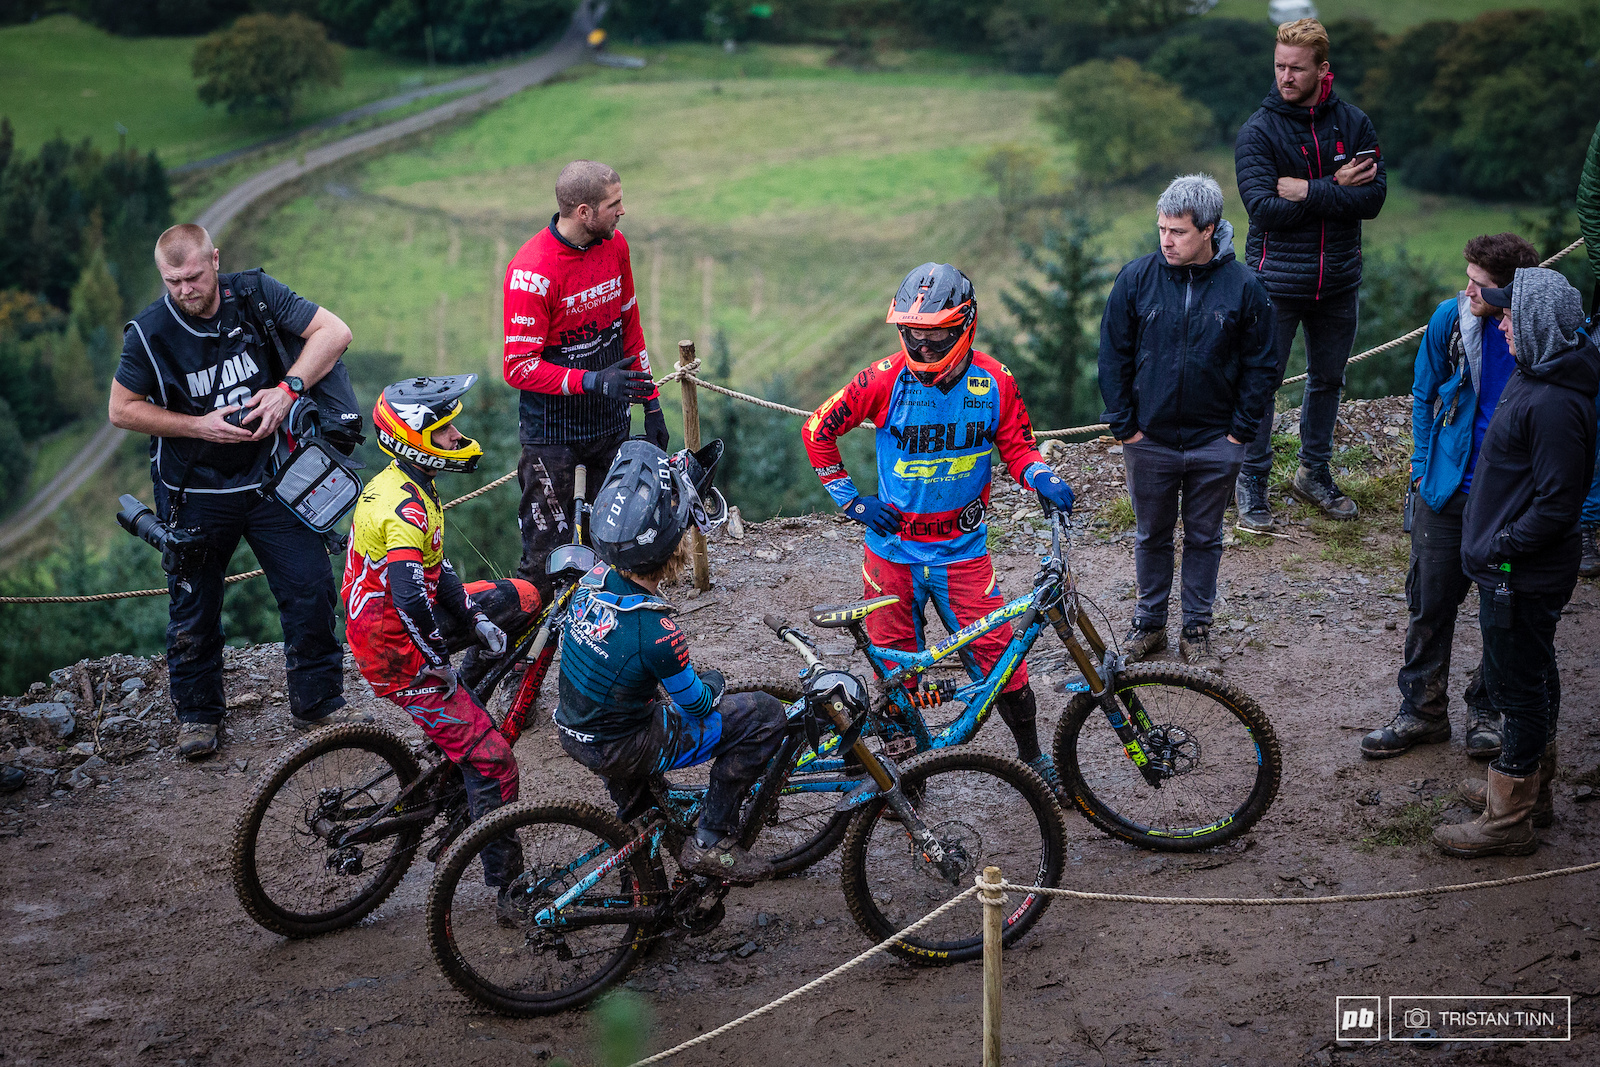 Riders discuss the renegade step up